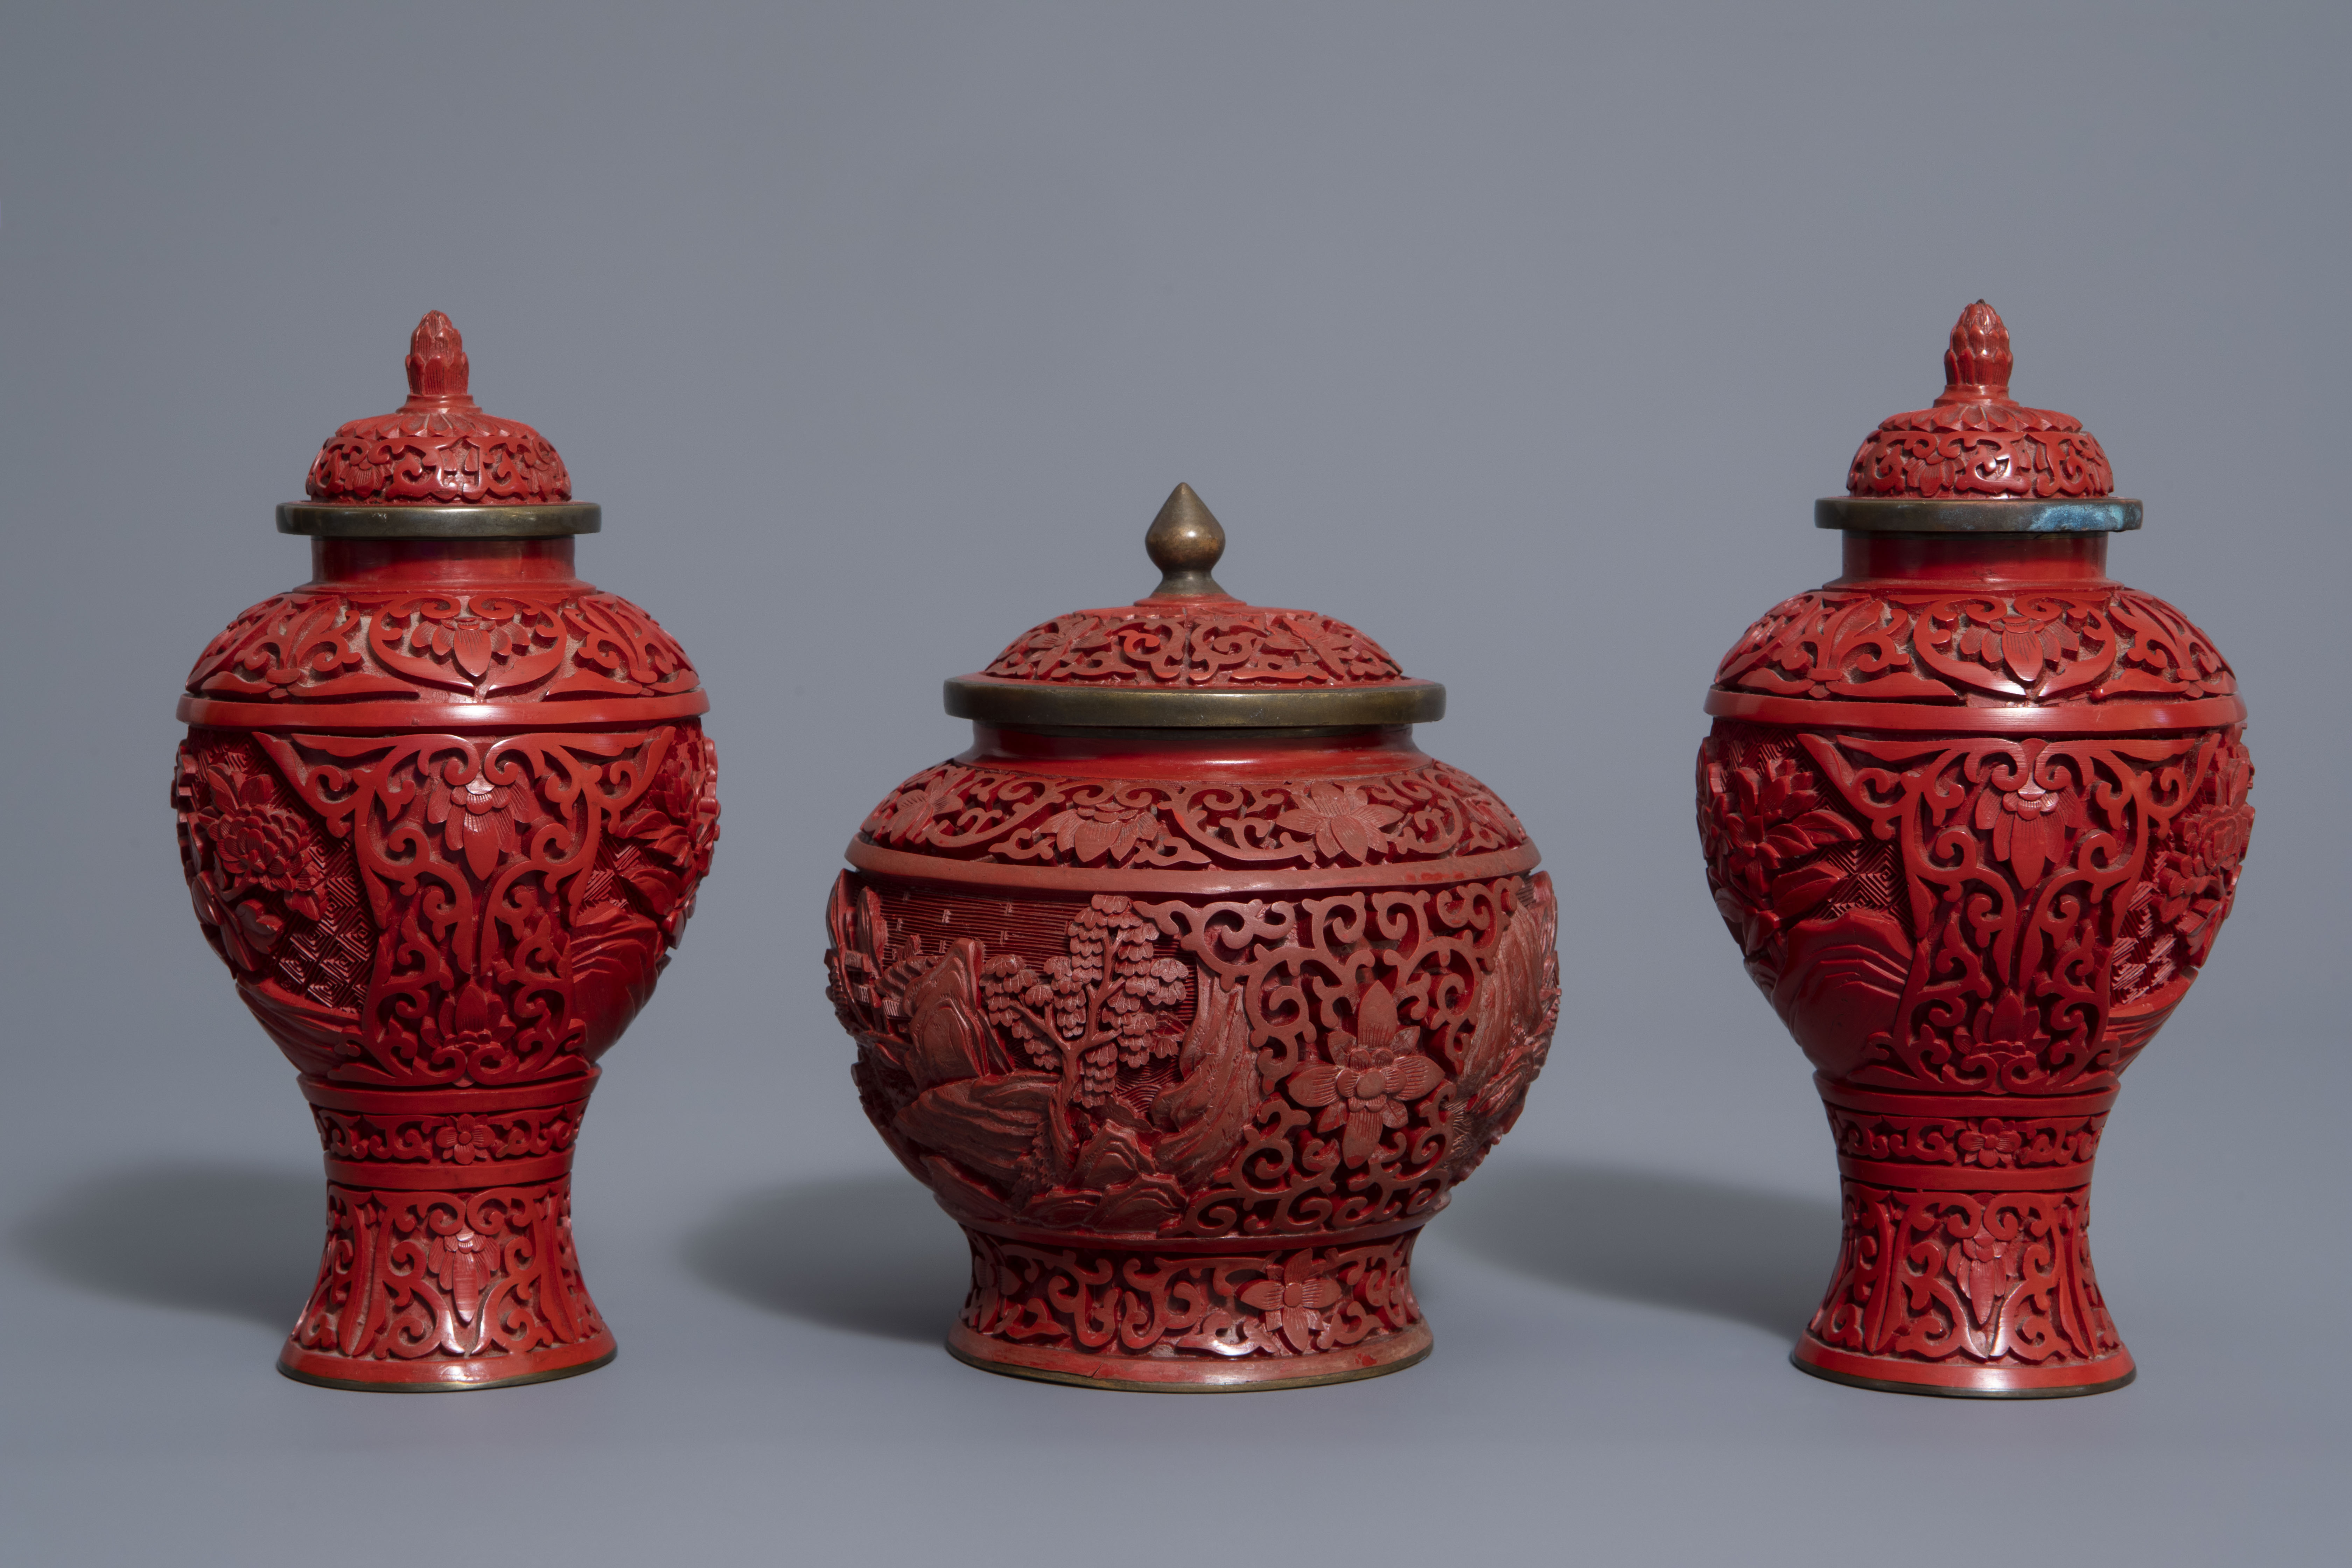 A Chinese tea block, cloisonné teapot, wall vase, bamboo brush pot & 3 red lacquer vases, 20th C. - Image 5 of 16